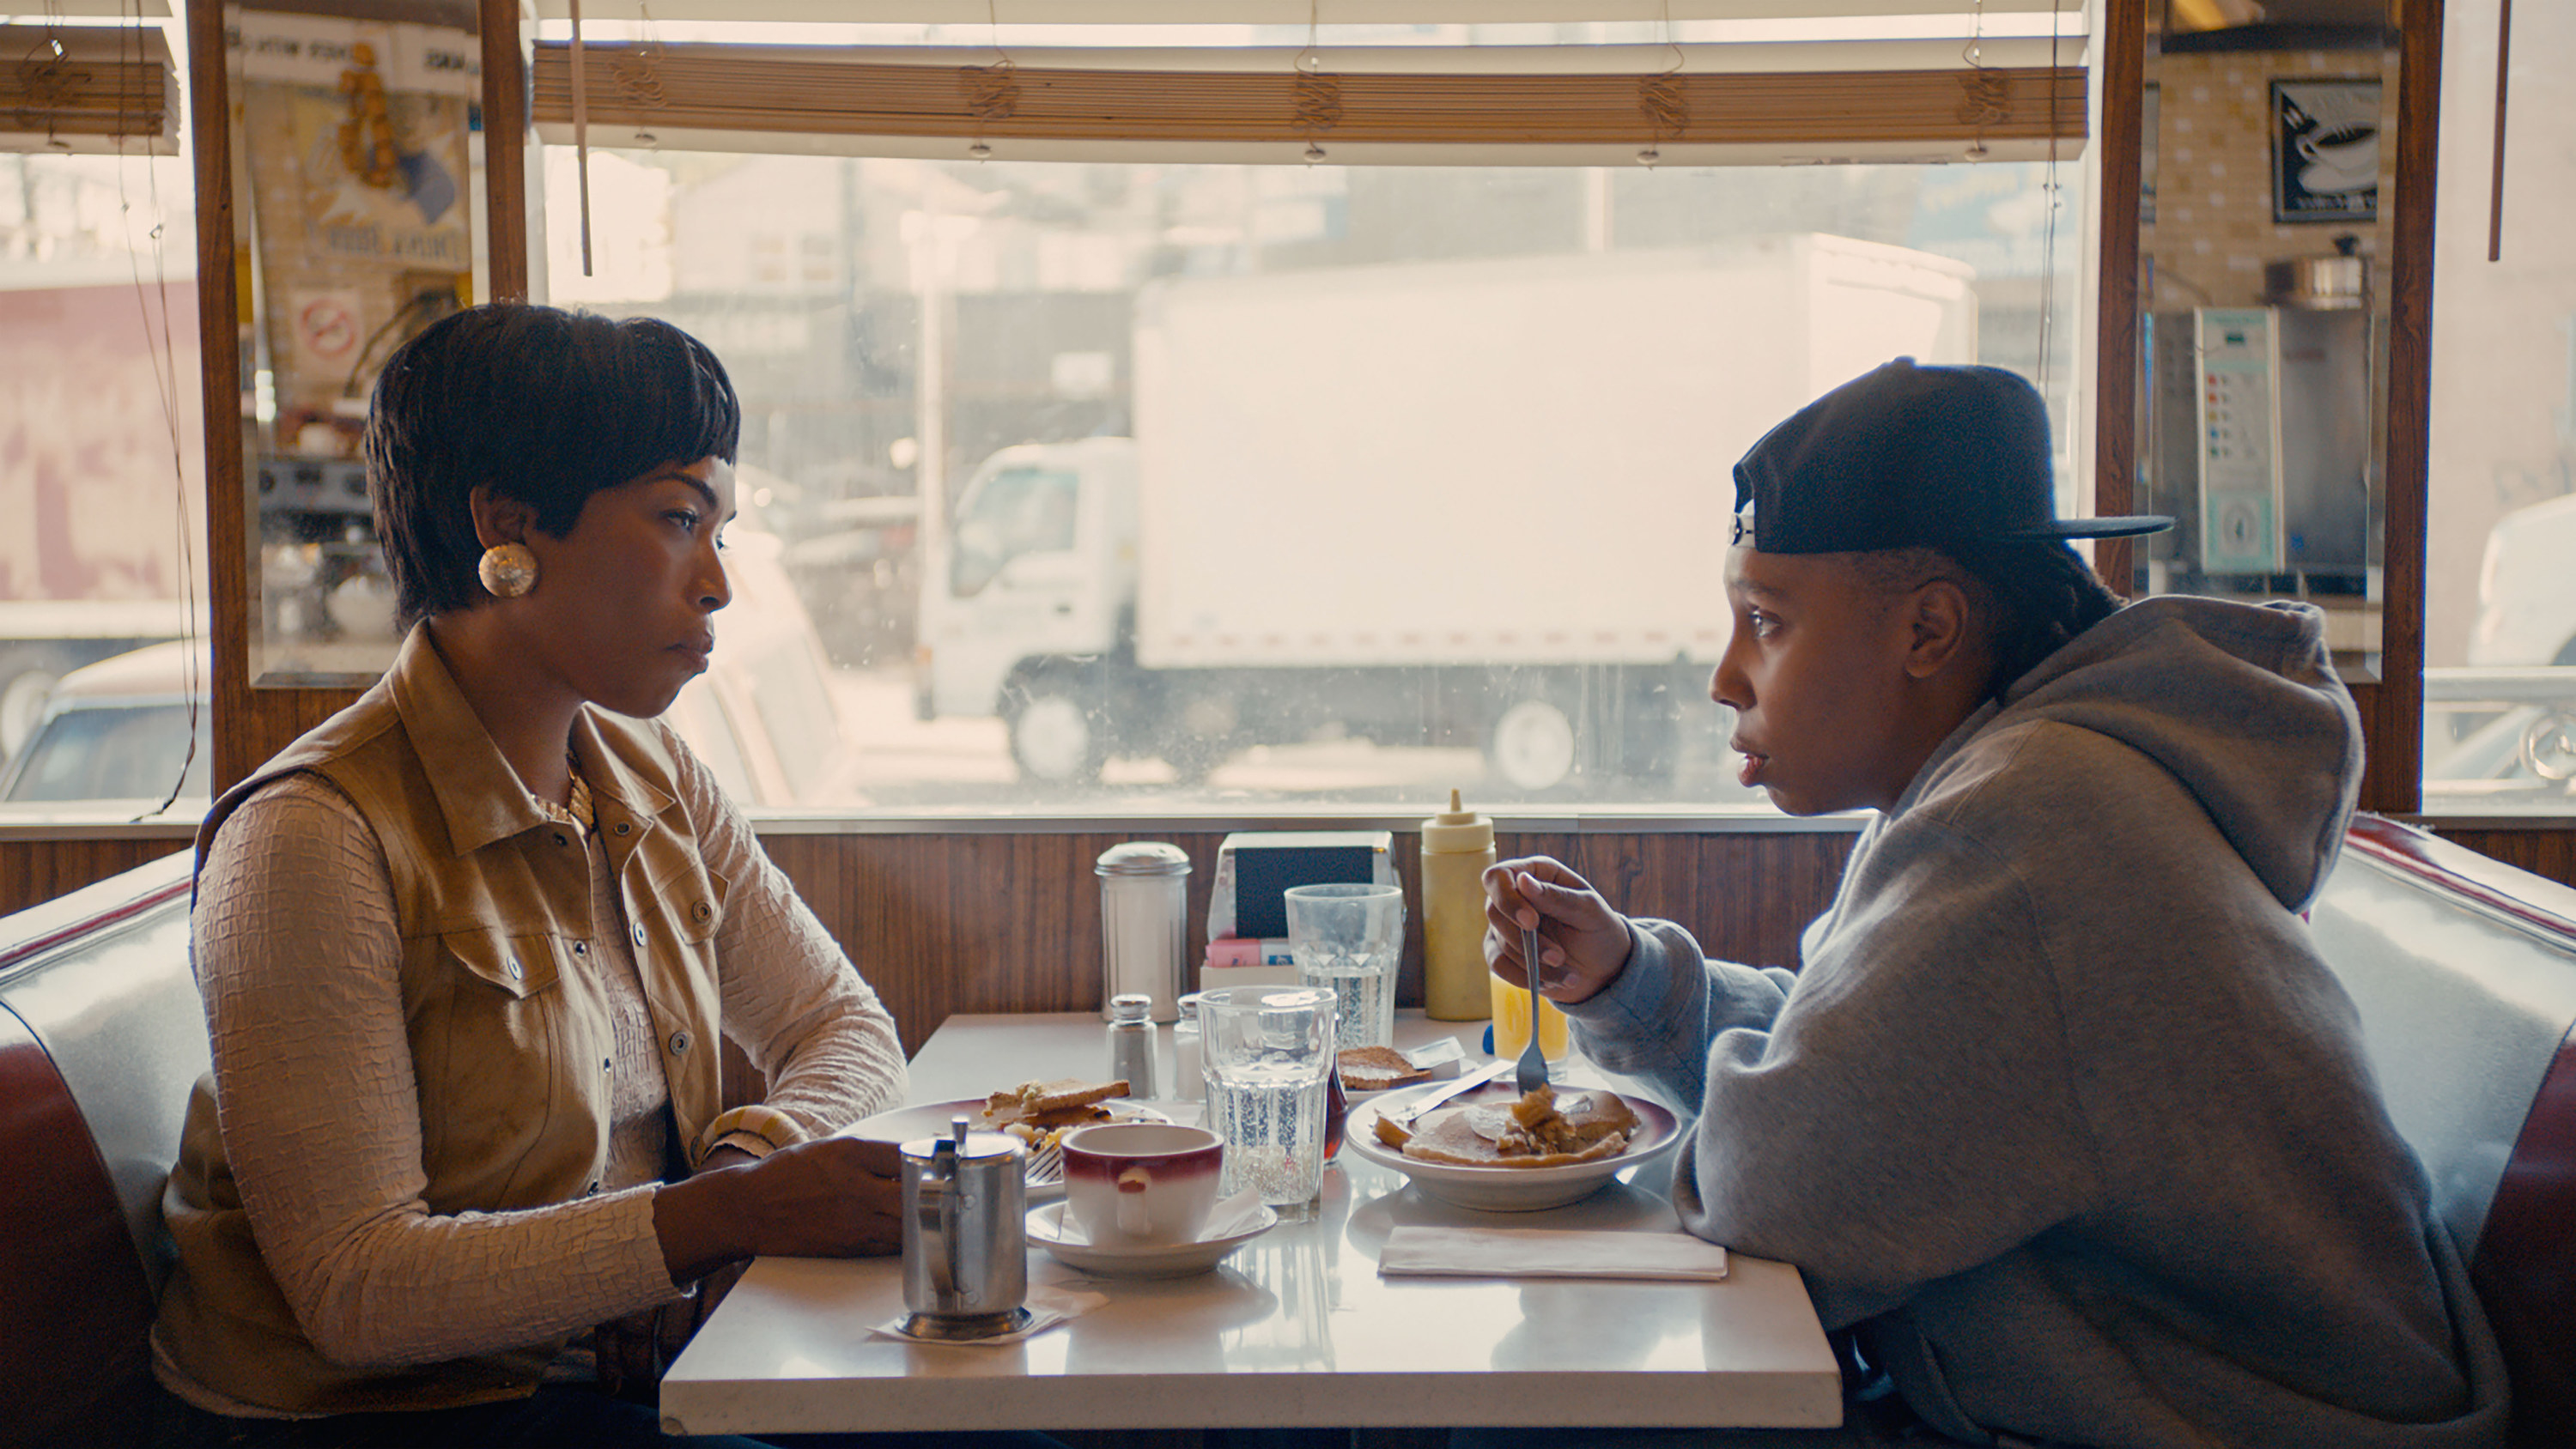 Angela Bassett and Lena Waithe sit across from each other at a diner